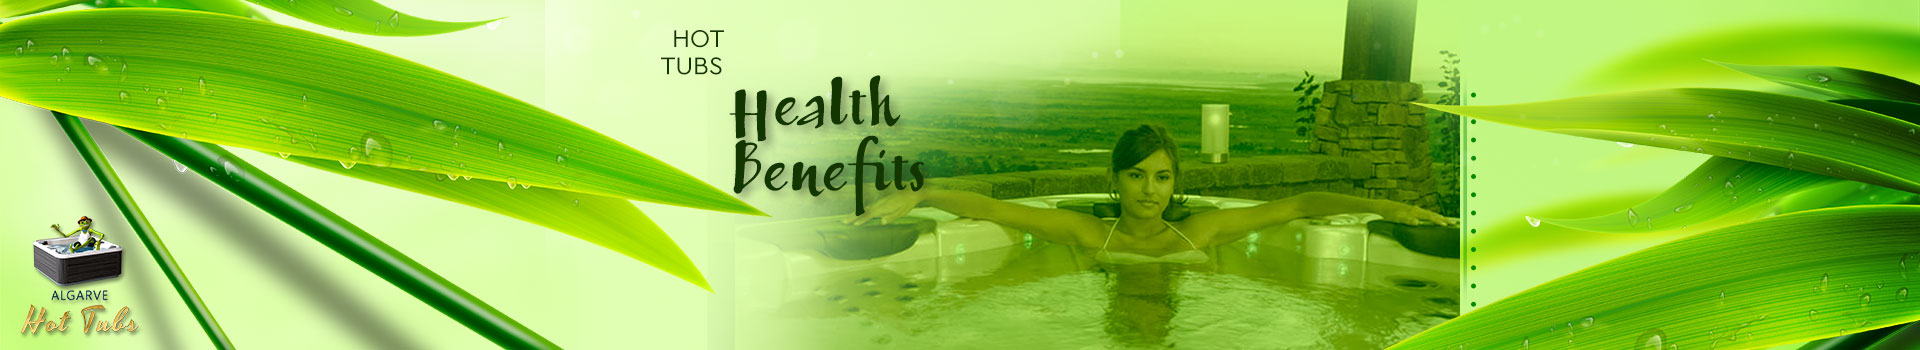 Hot Tubs Health Benefits - Wellness Dreams Algarve